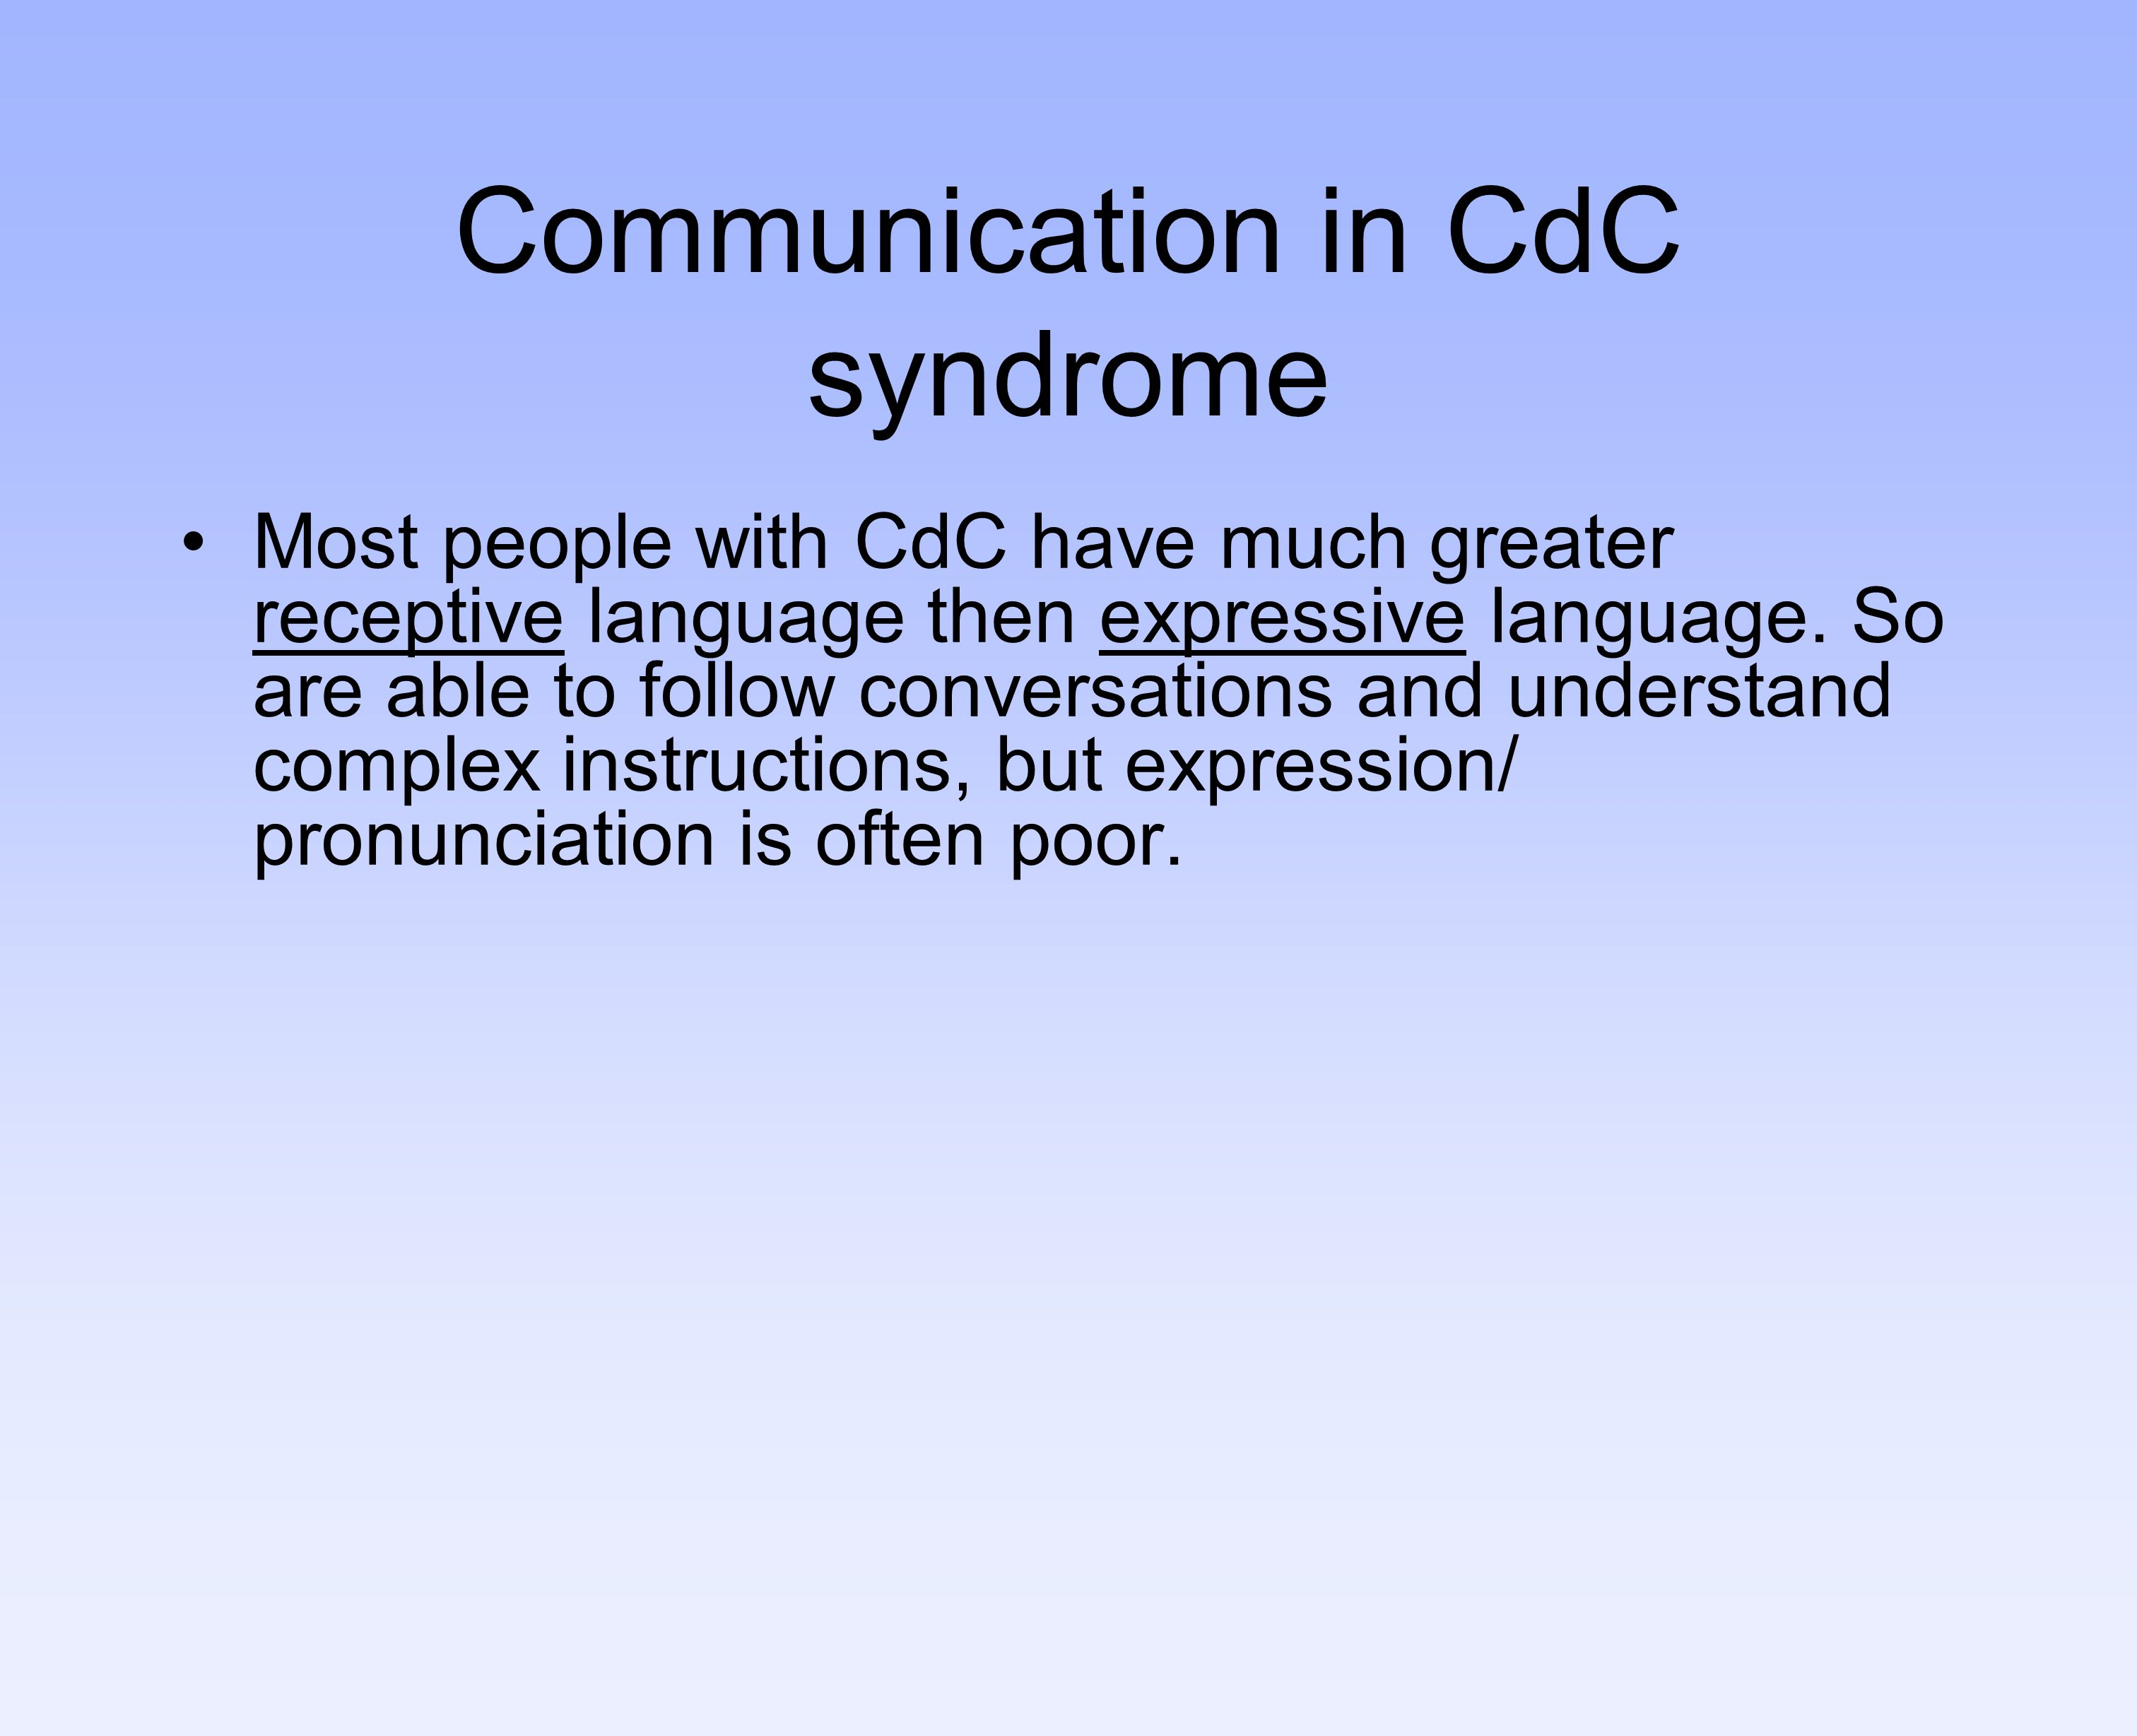 Communication in CdC syndrome Most people with CdC have much greater receptive language then expressive language. So are able to follow conversations